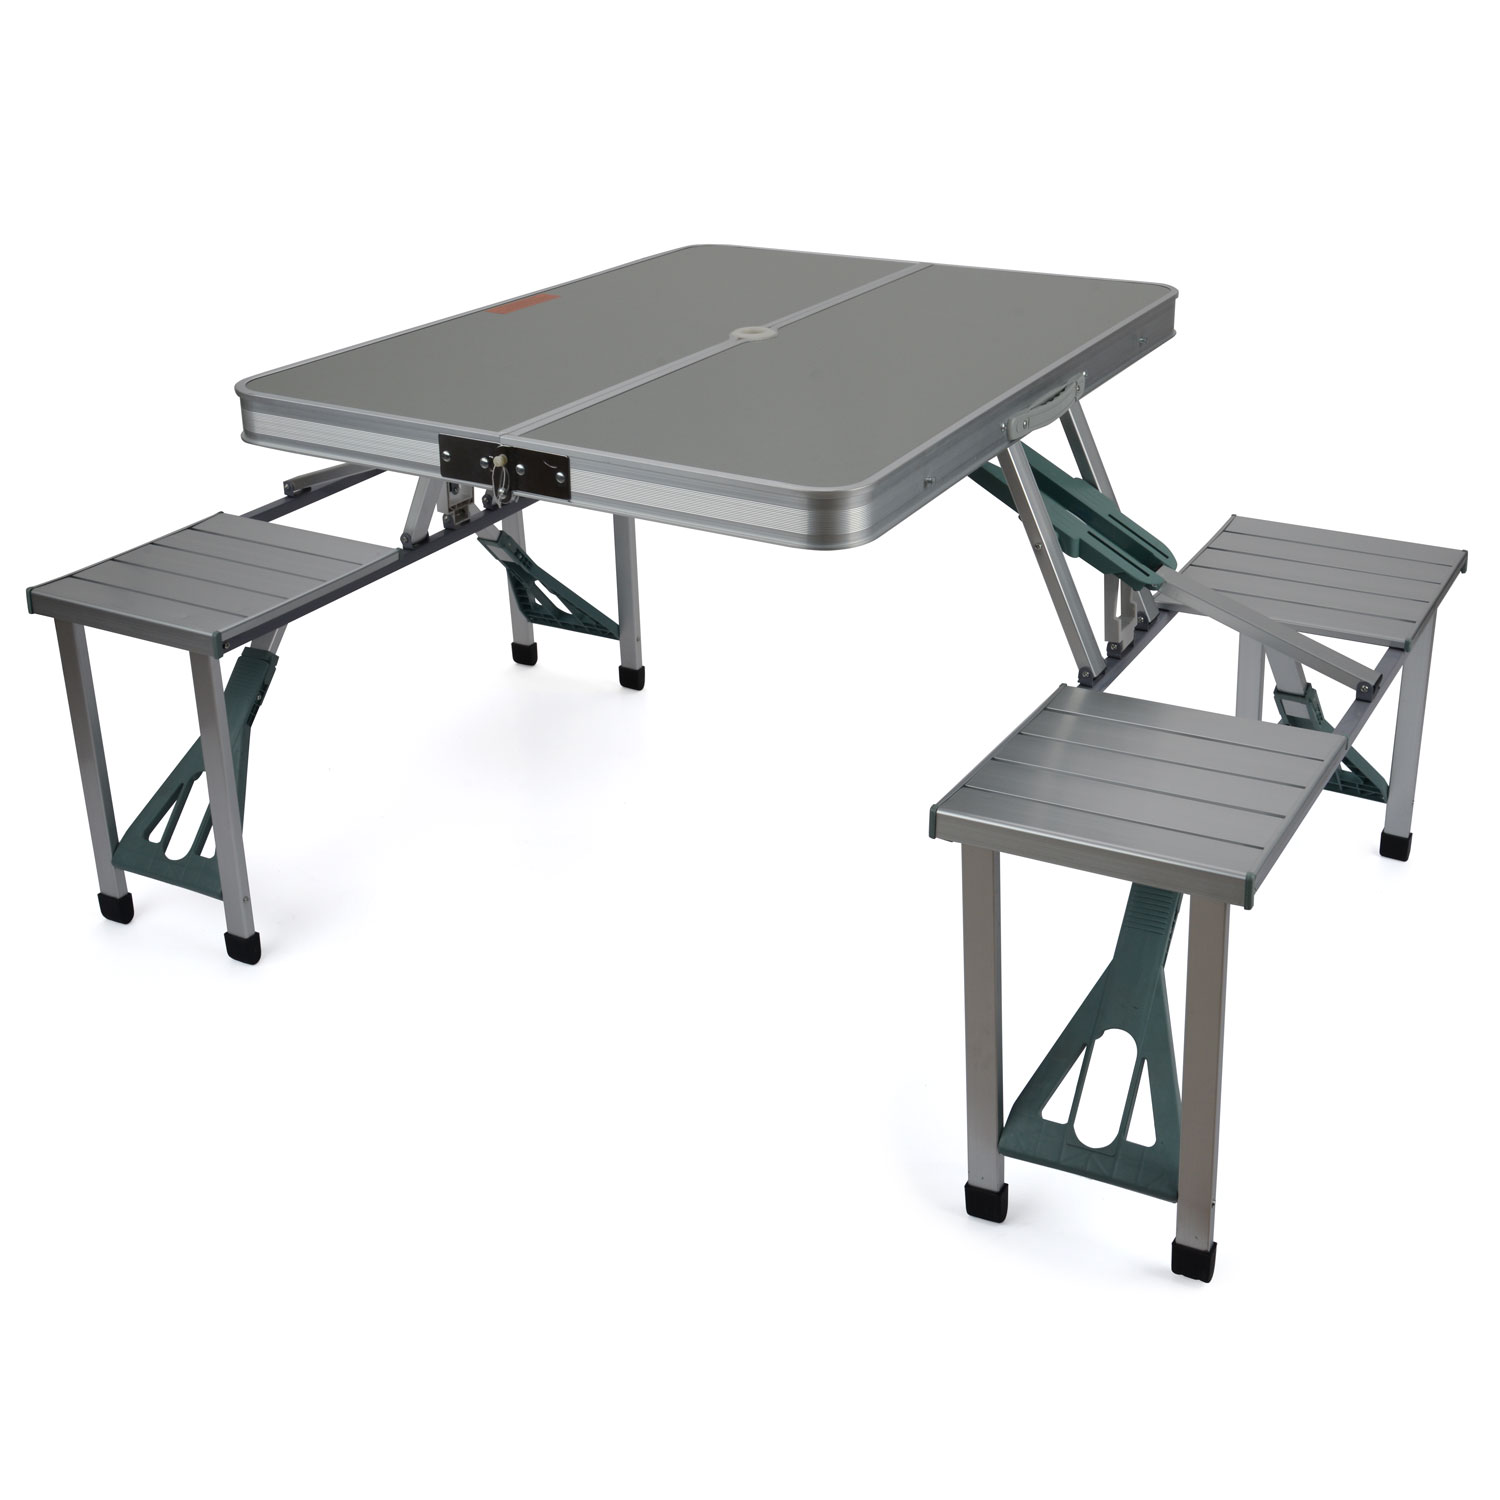 Trail aluminium portable folding camping outdoor bbq - Camping picnic table and chairs ...